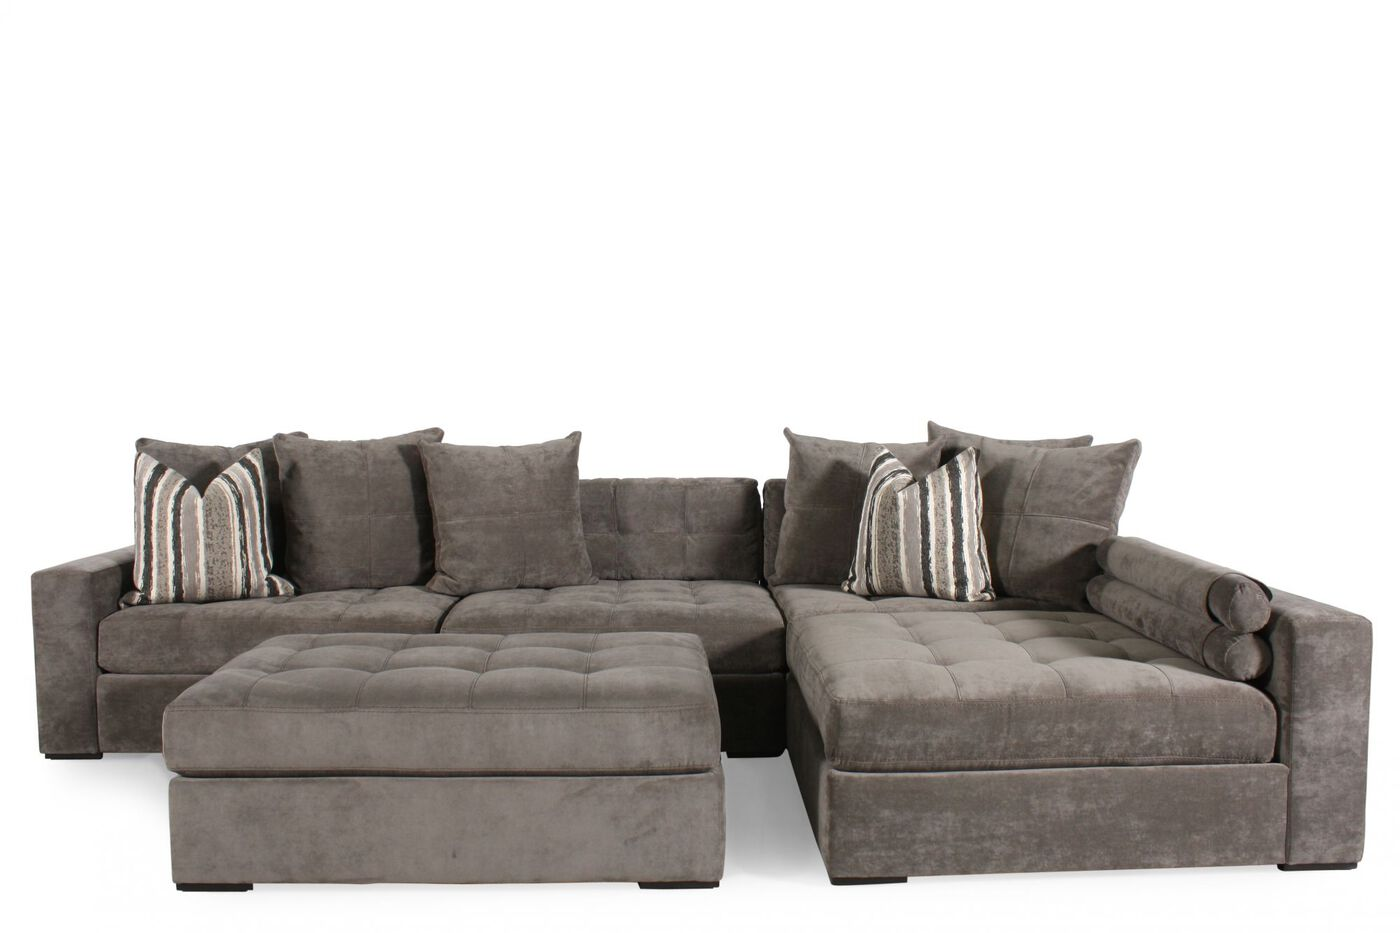 Contemporary tufted sectional in muted gray mathis for Sectional sofas mathis brothers